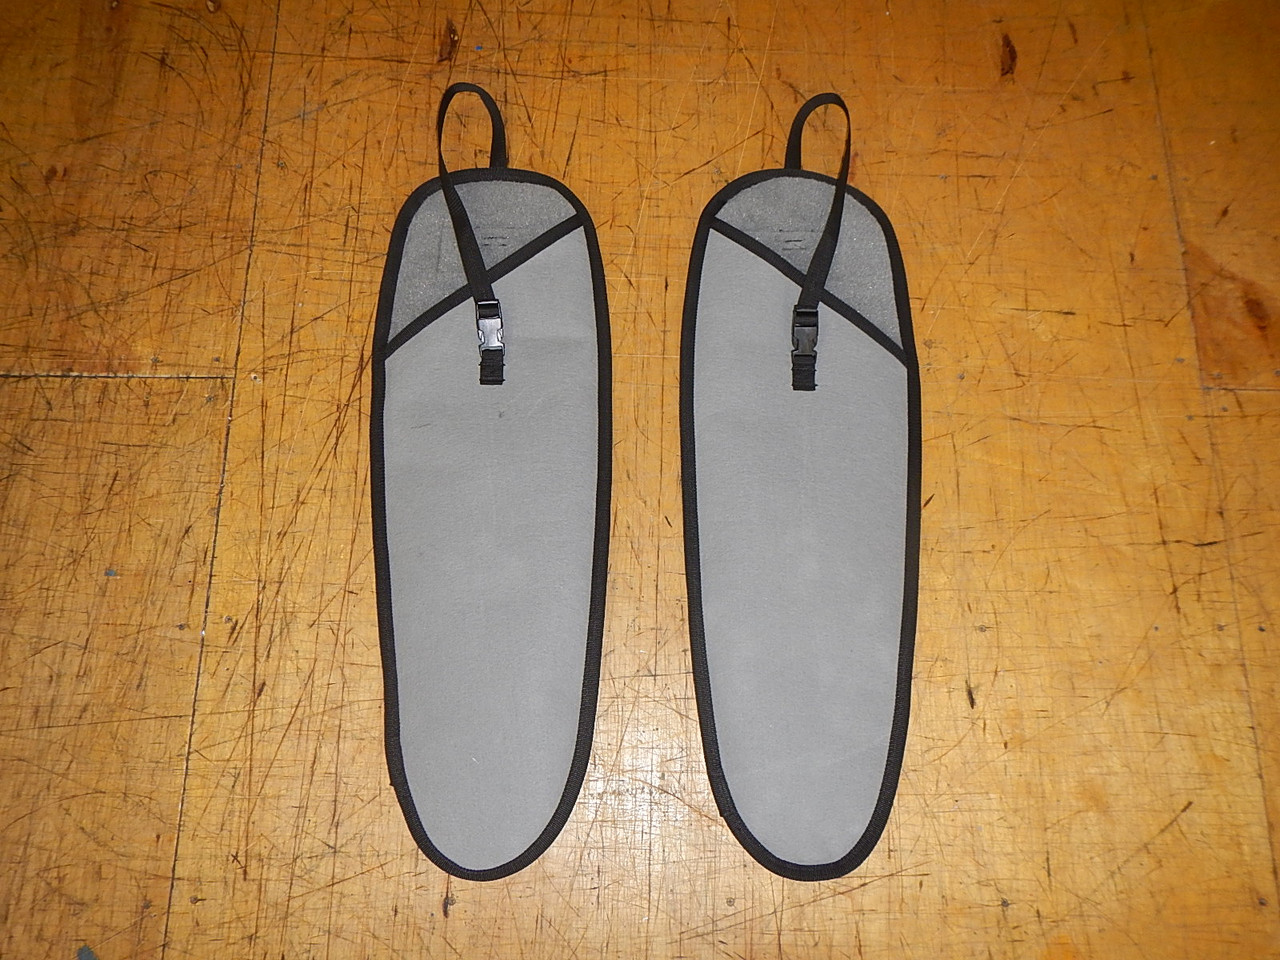 Rudder Covers to fit most Hobie Rudders made of protective Spectropile marine carpet!